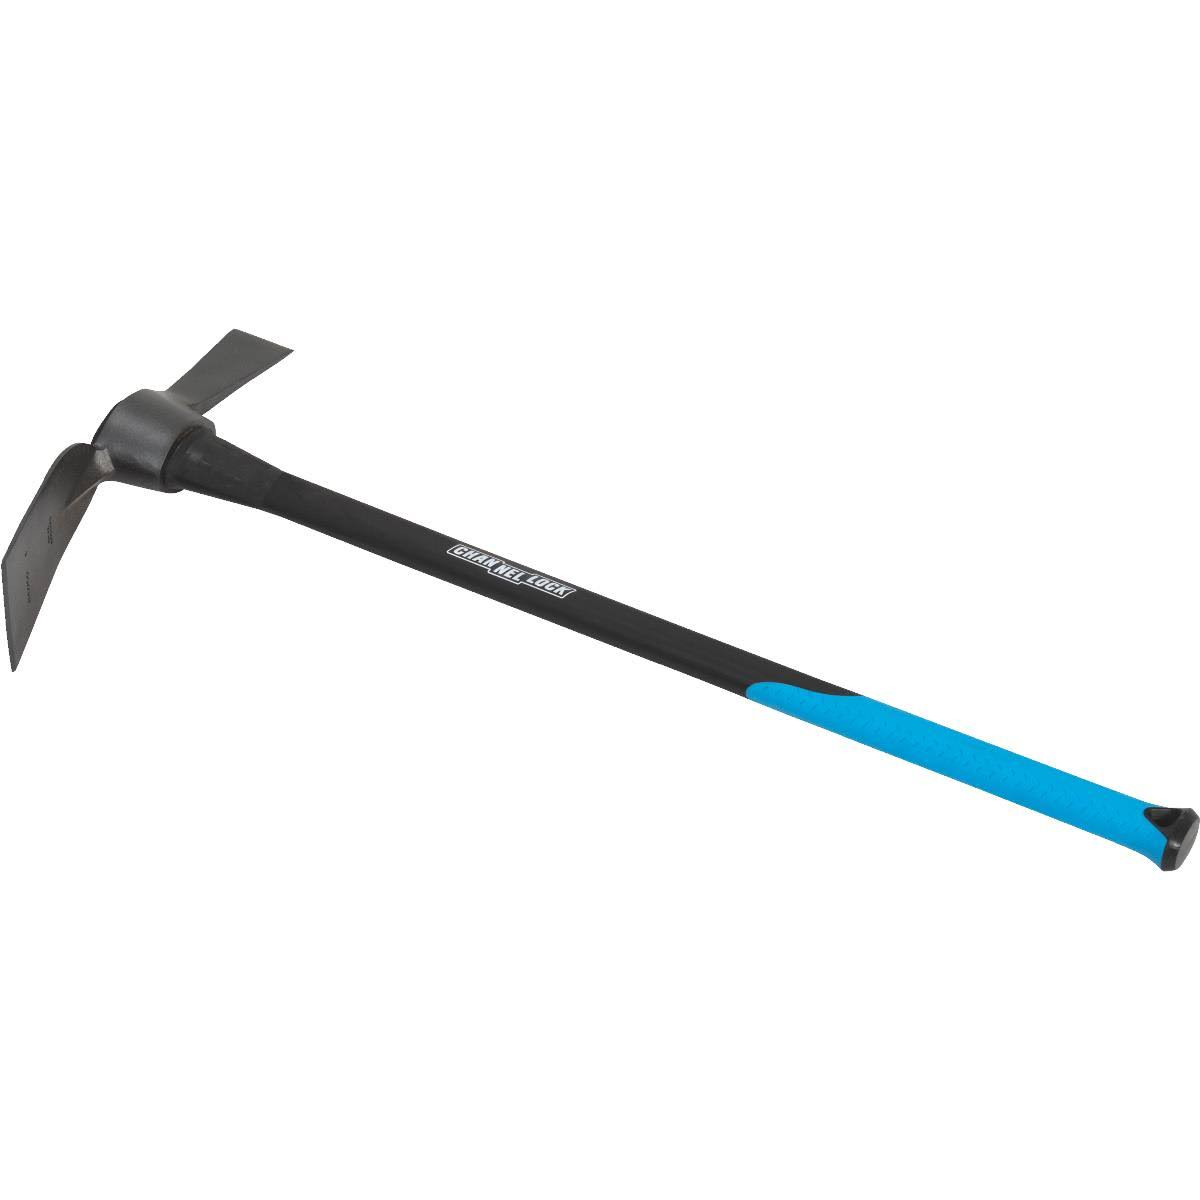 Channellock Products Cutter Mattock